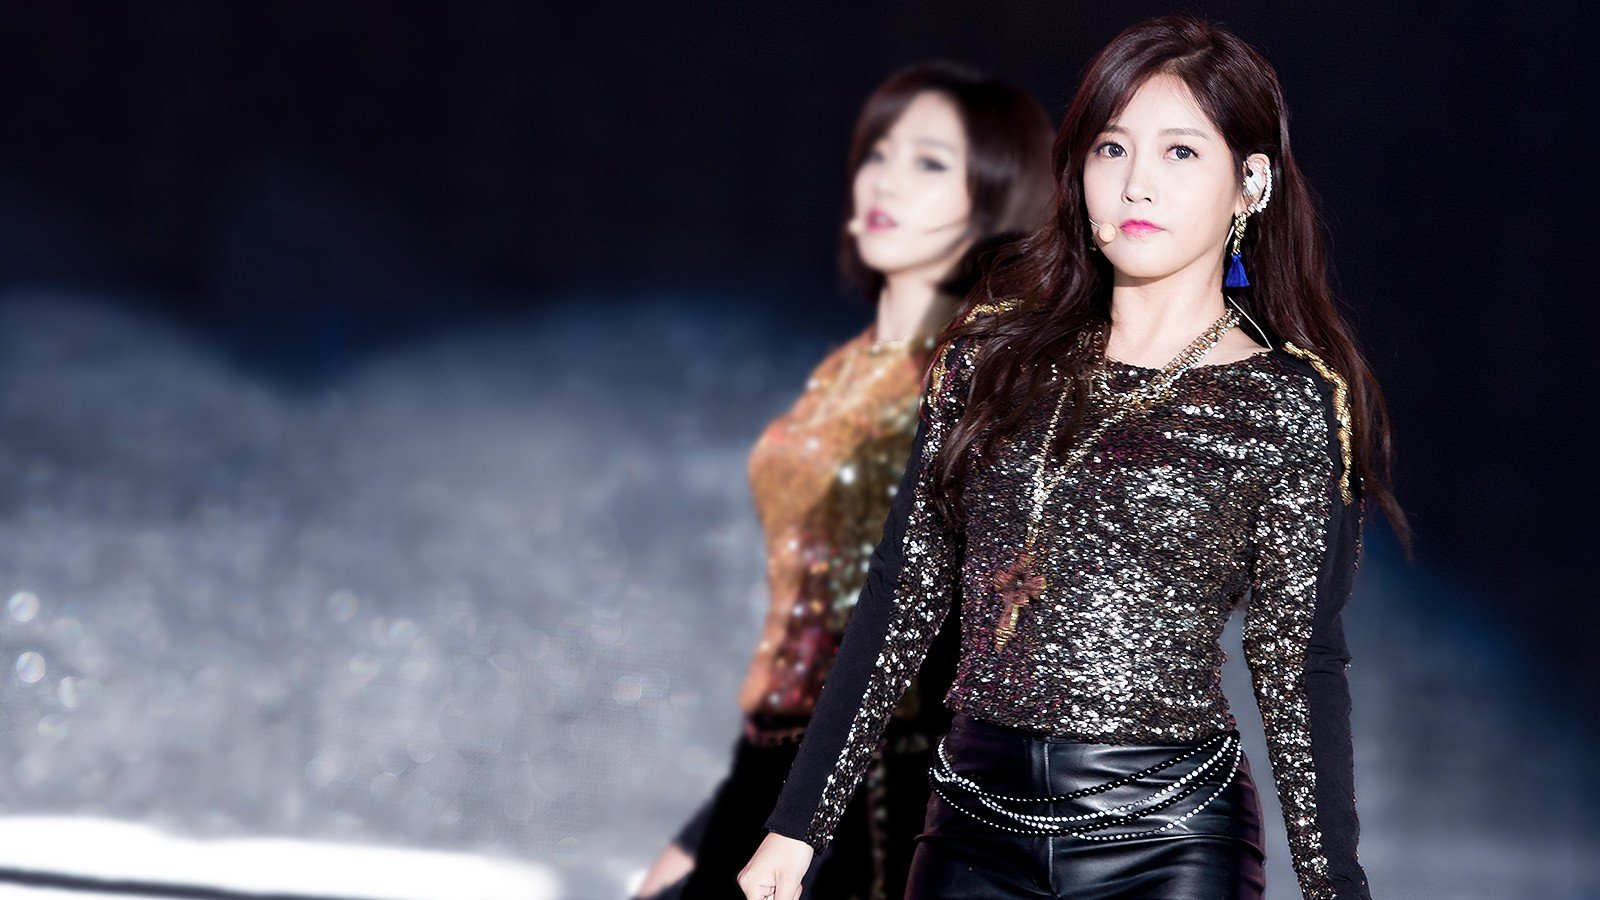 T ara k pop soyeon hd wallpapers desktop and mobile images photos - T ara wallpaper hd ...